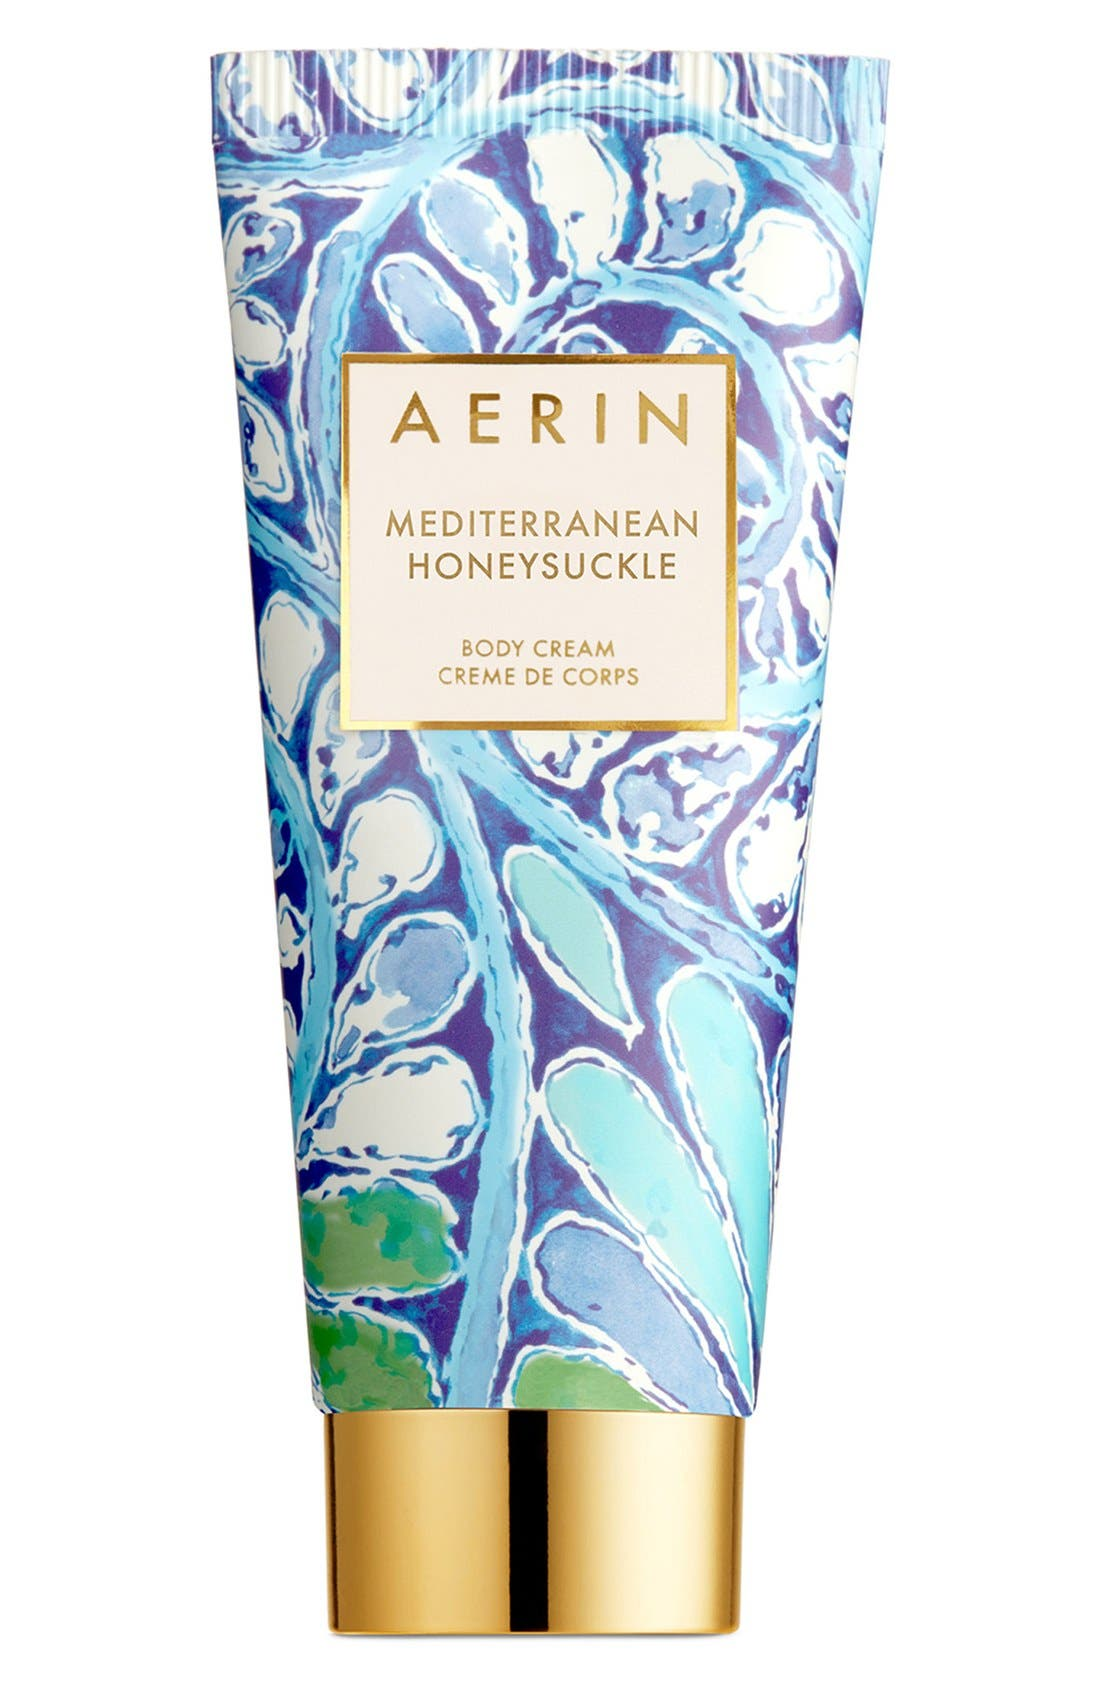 AERIN Beauty Mediterranean Honeysuckle Body Cream,                             Main thumbnail 1, color,                             NO COLOR